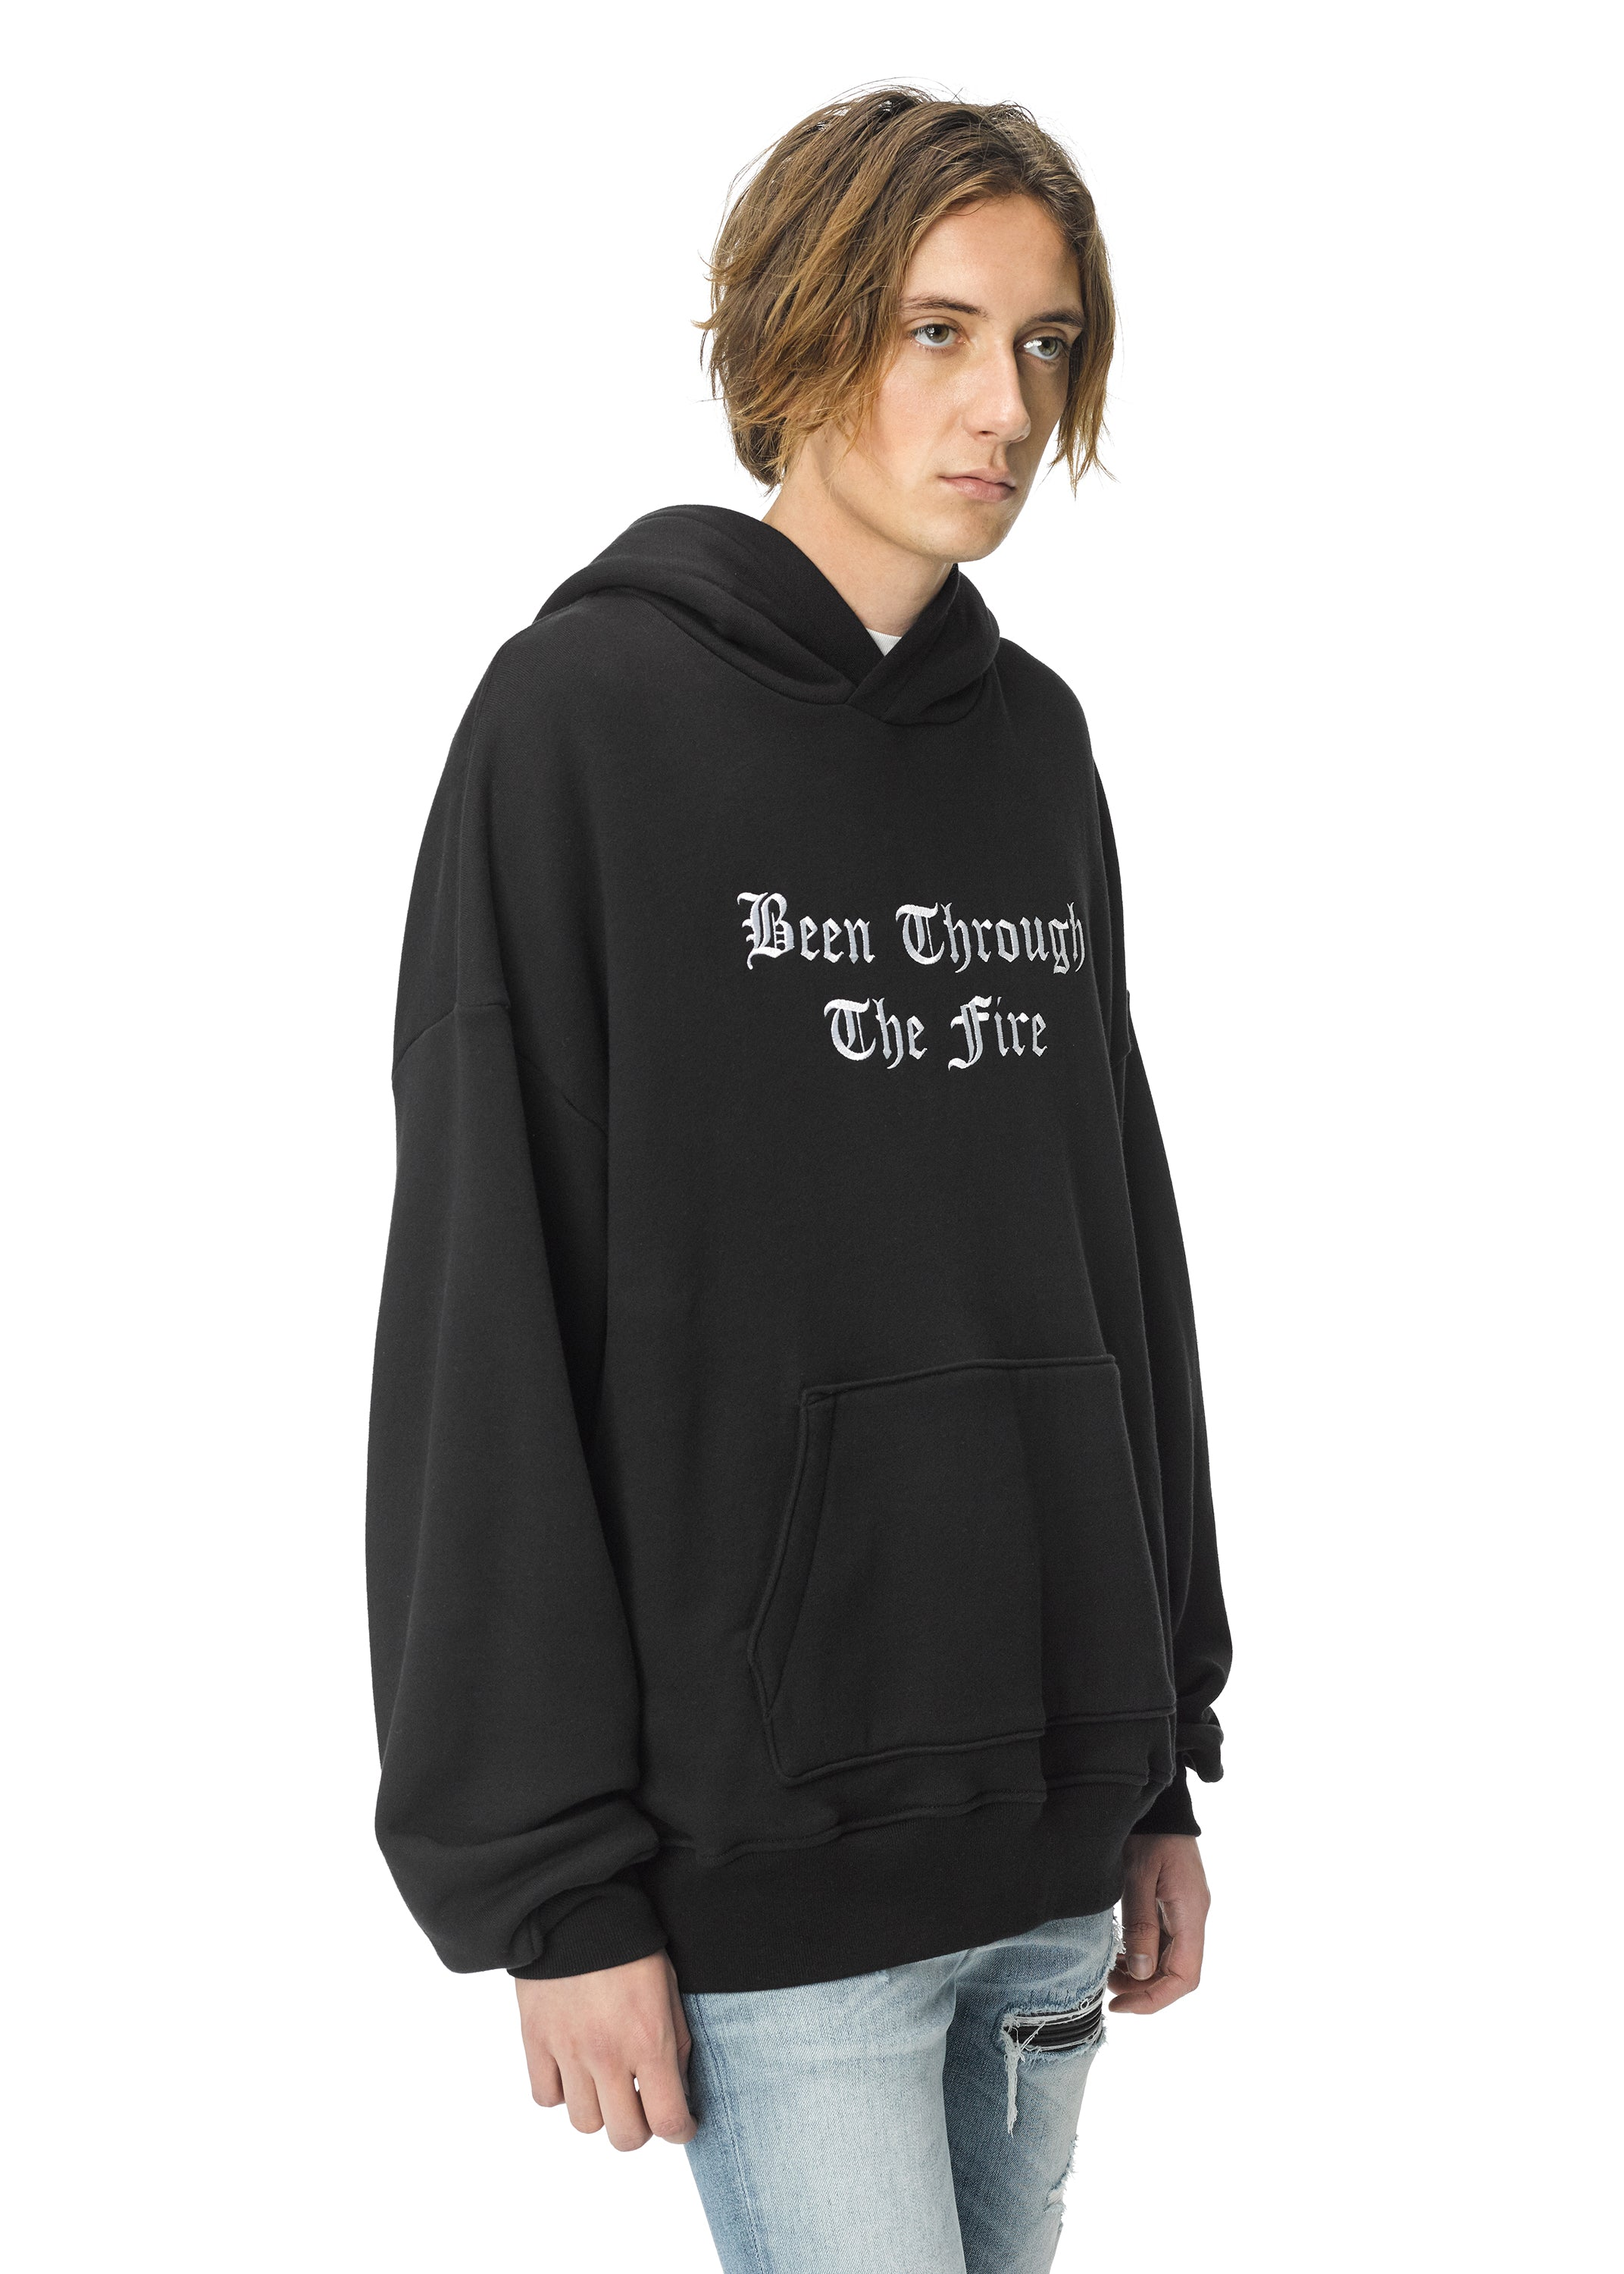 been-through-the-fire-hoodie-black-image-4